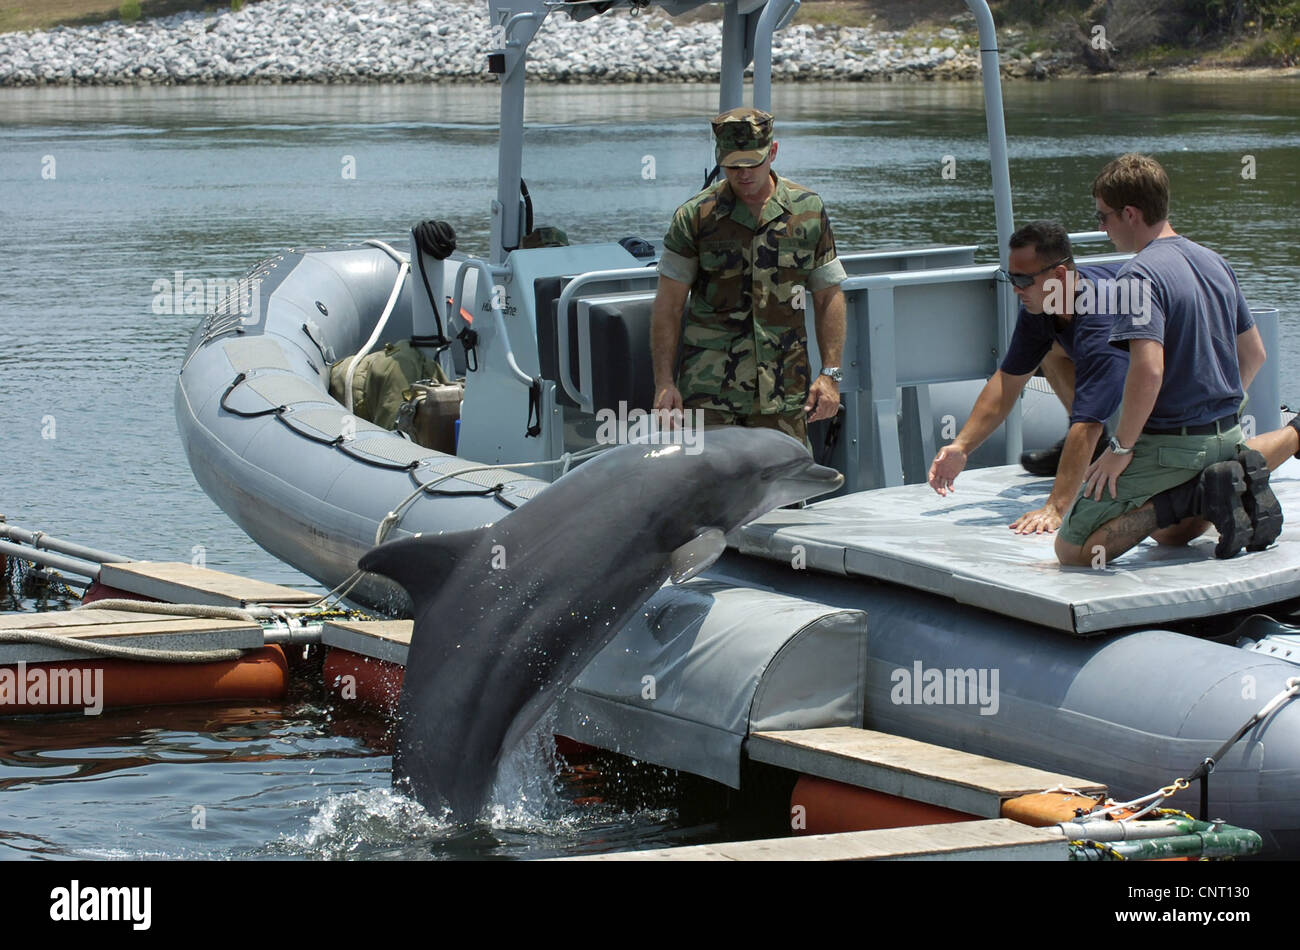 Members of the Naval Special Clearance Team One works with a Navy dolphin trained to detect sea mines June 13, 2007 - Stock Image